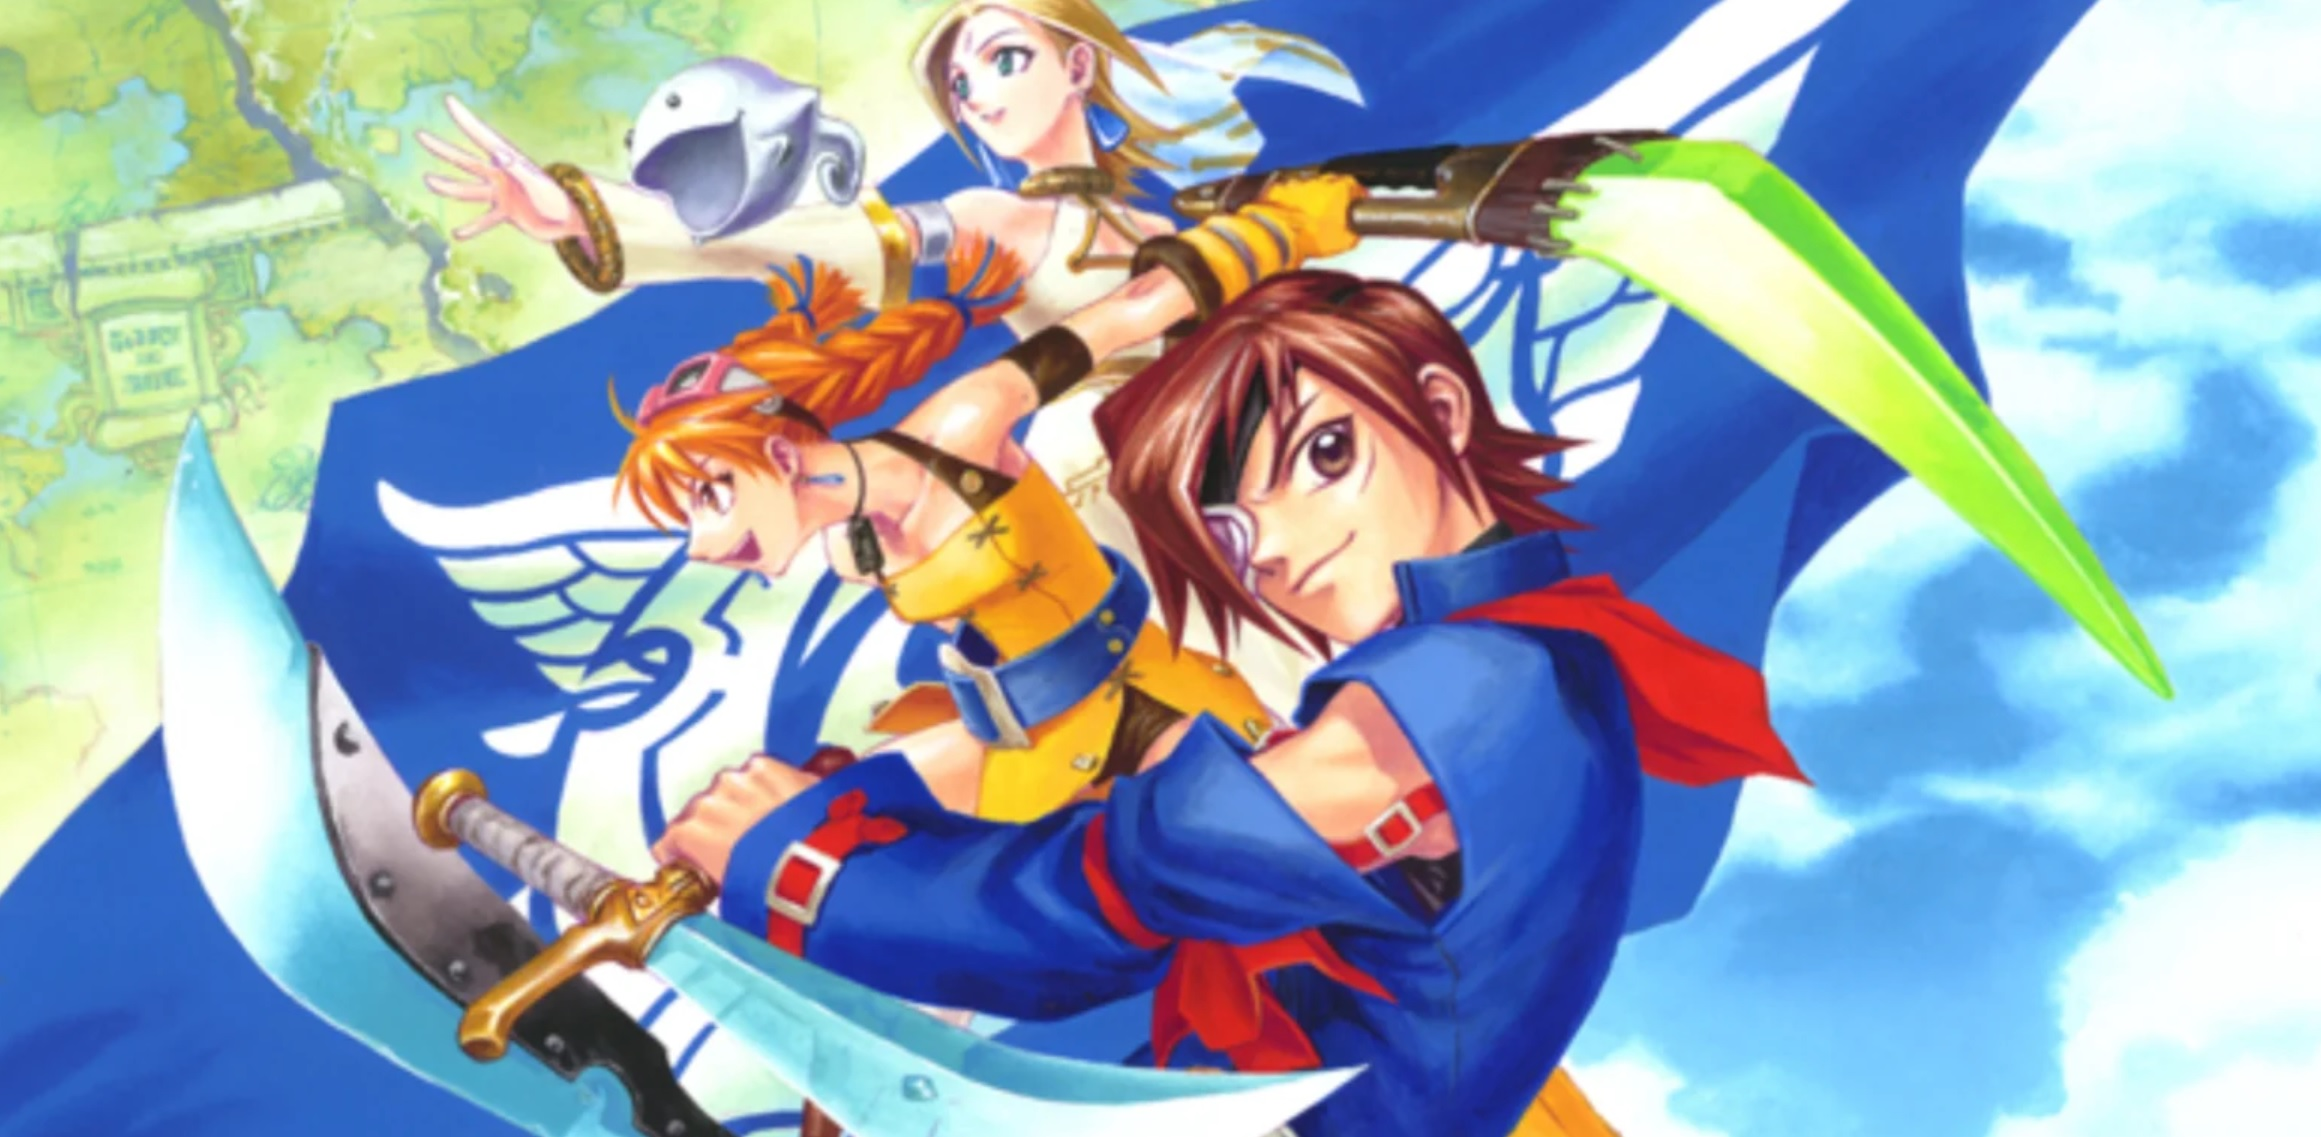 There's Skies of Arcadia sequel talk yet again and I am here for it screenshot